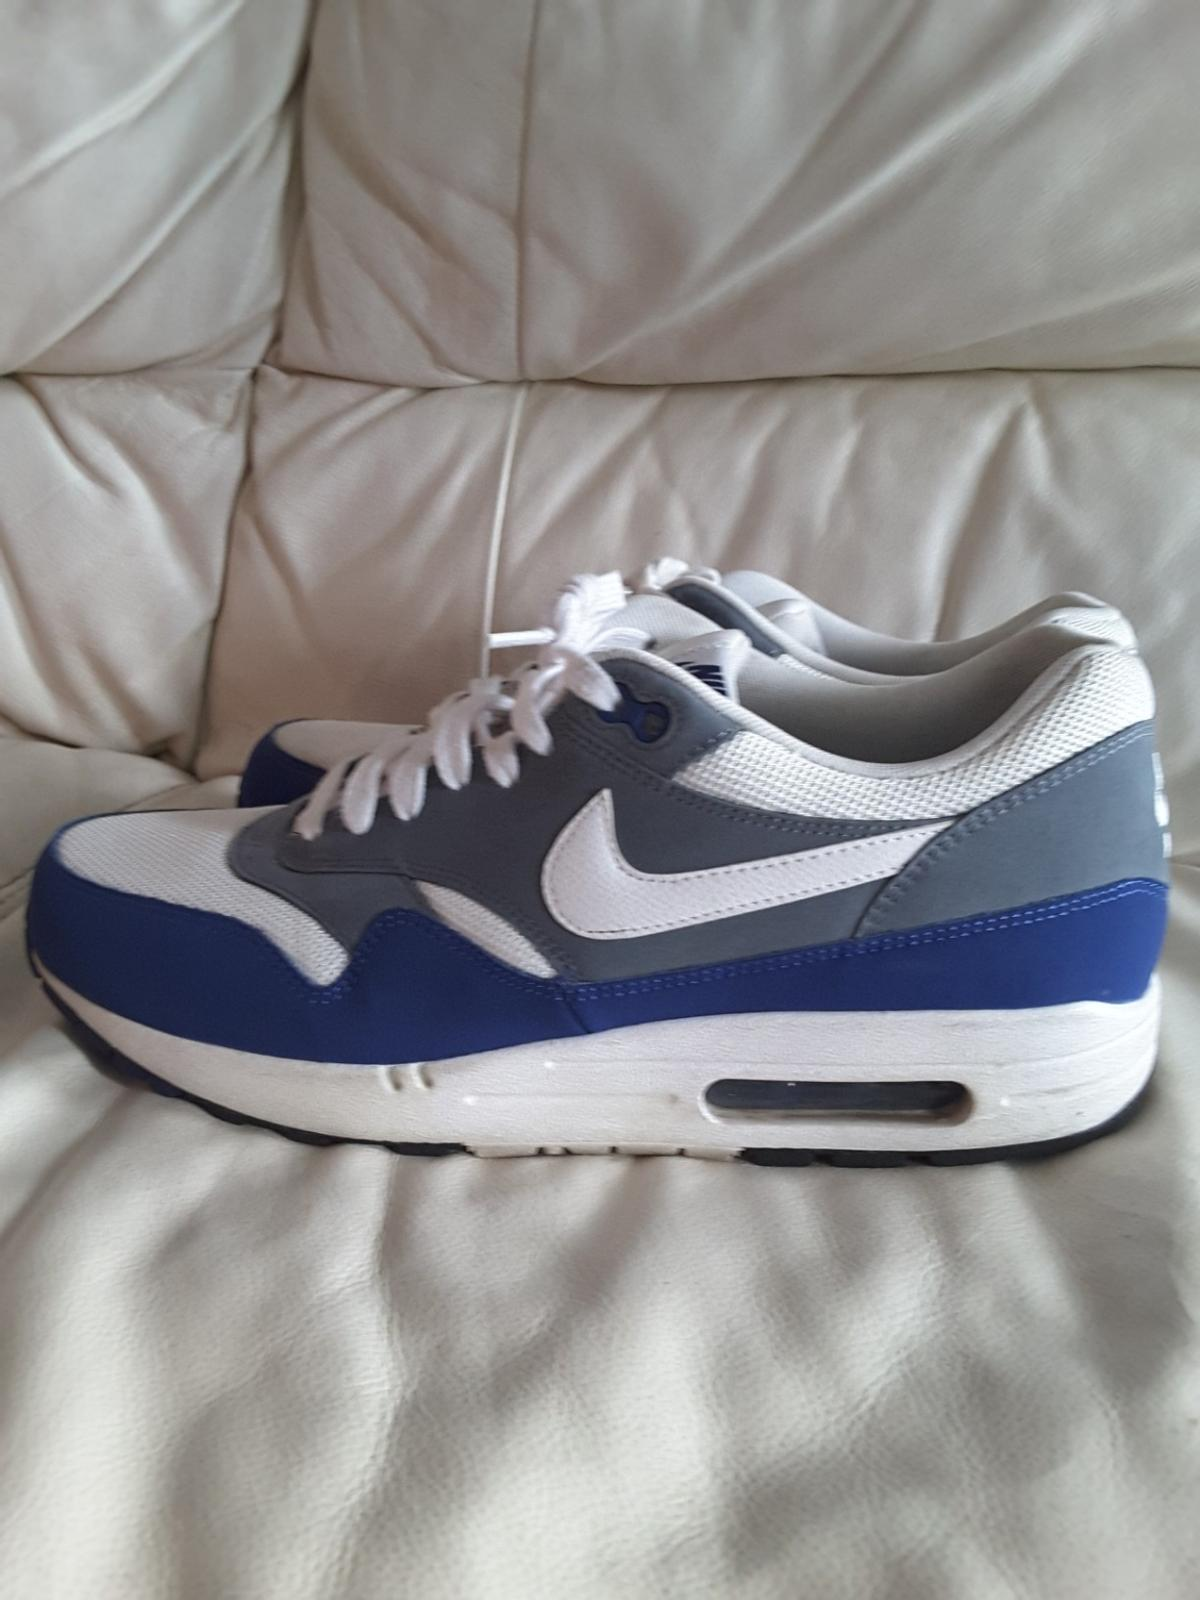 MENS NIKE AIR MAX ONE TRAINERS UK 9 EUR 44 in SW9 London für